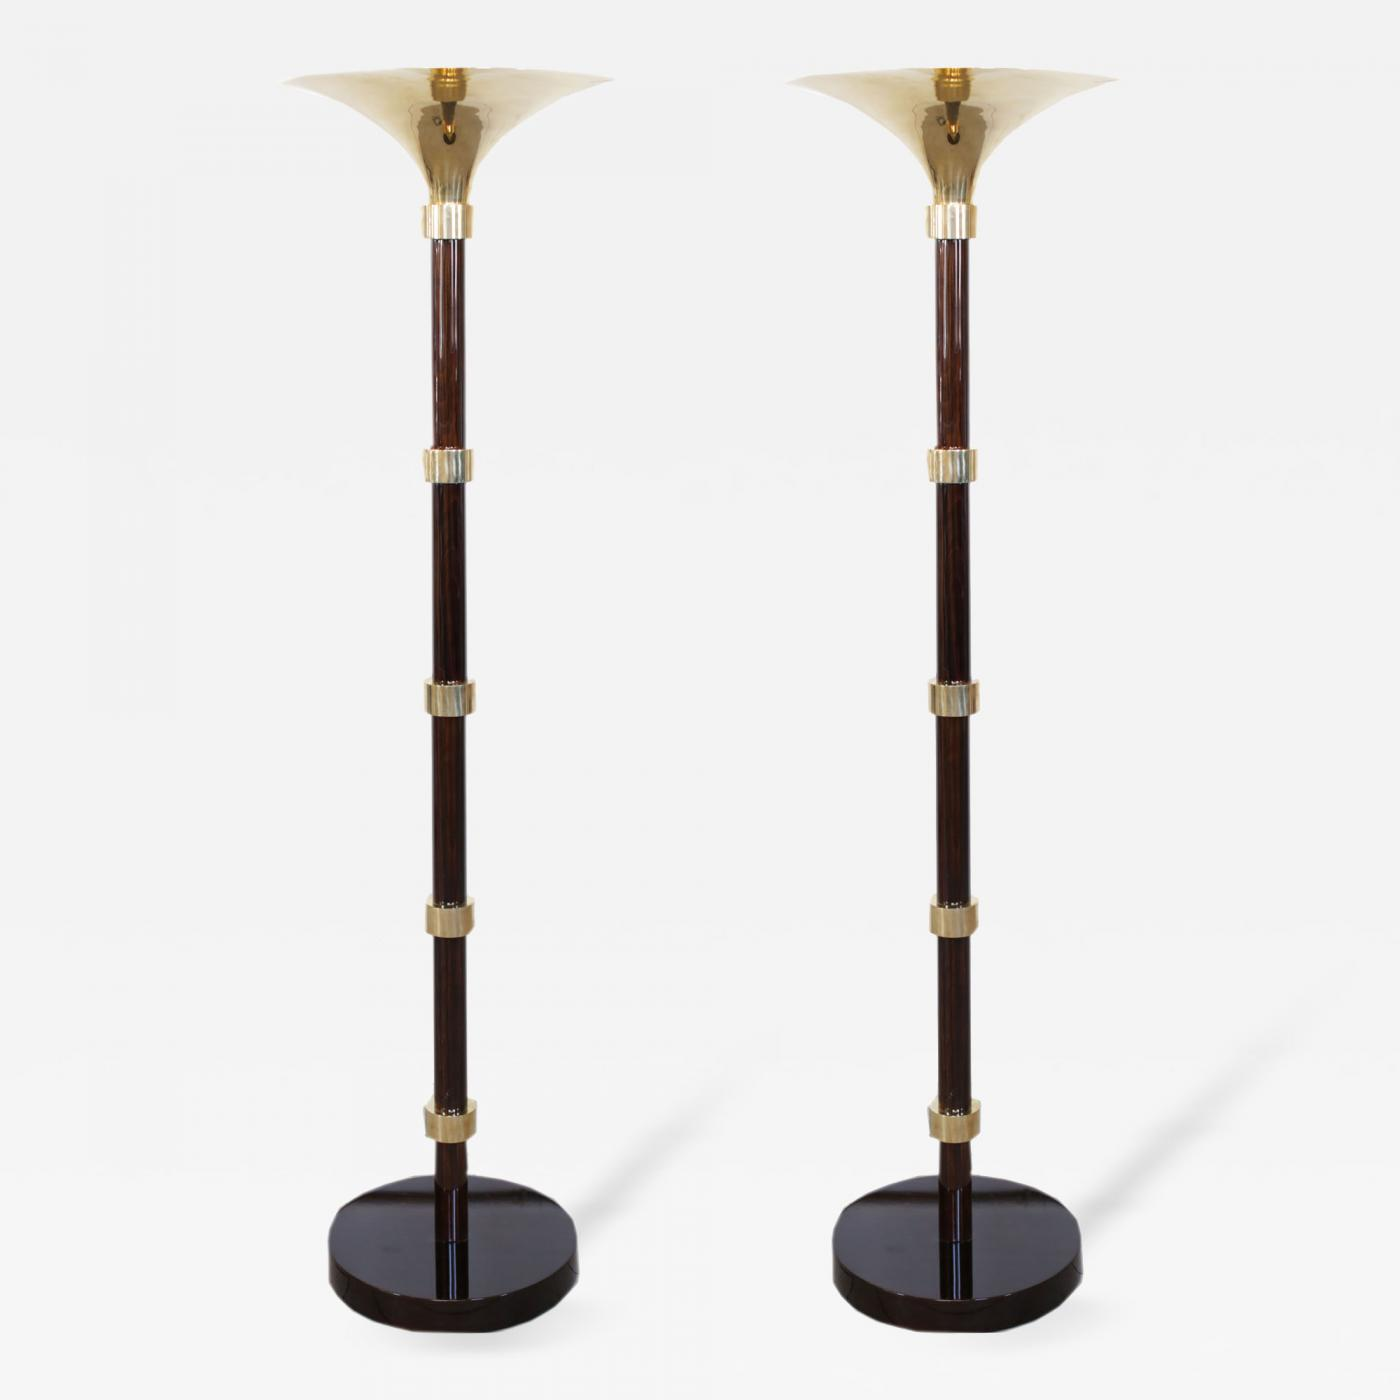 Pair of french art deco torchieres floor lamps circa 1930s for 1930s floor lamps